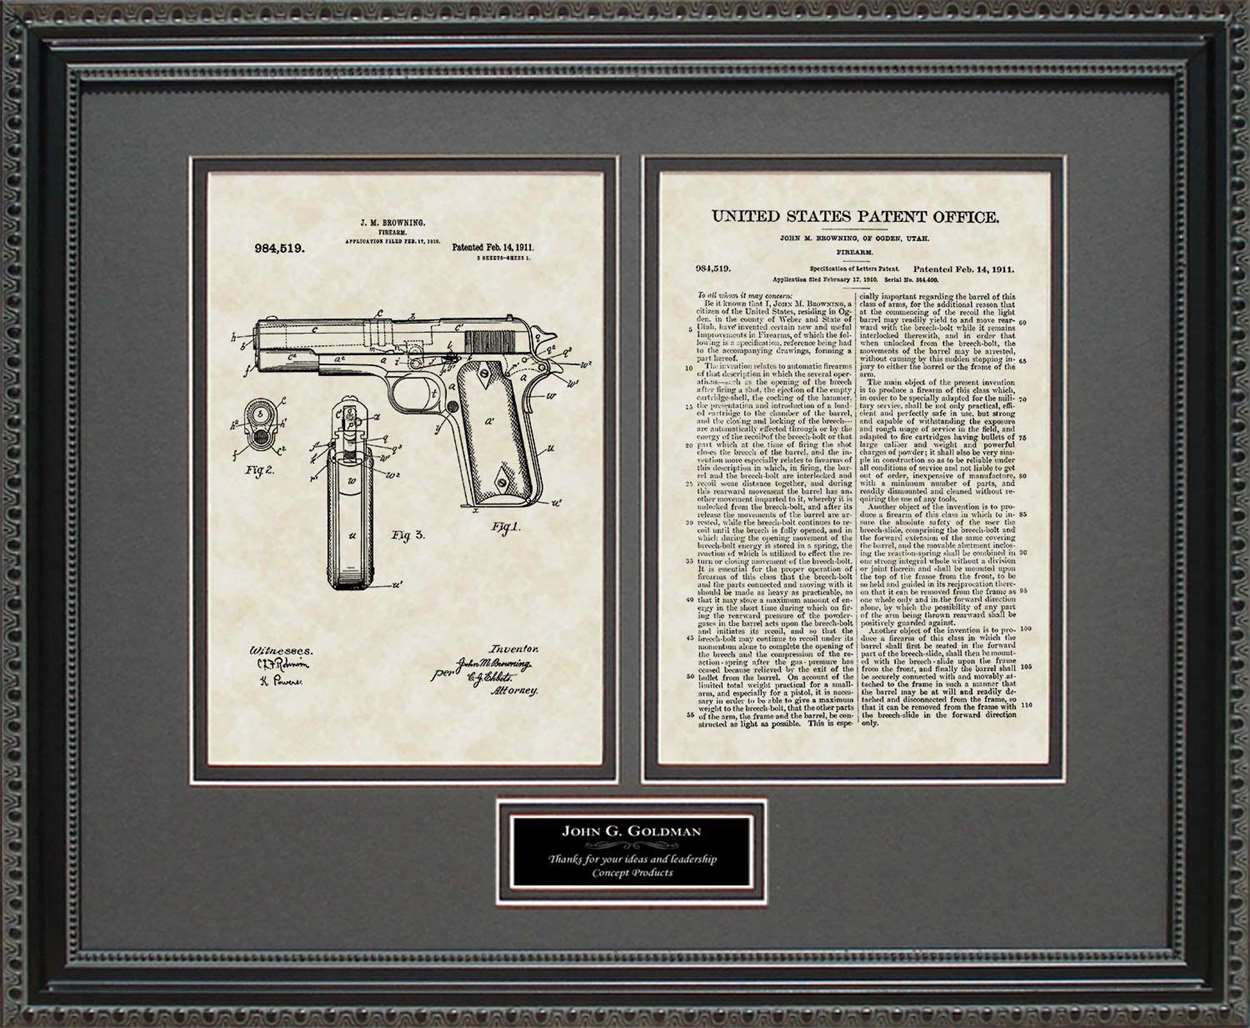 Personalized Colt 45 Pistol Patent, Art & Copy, Browning, 1911